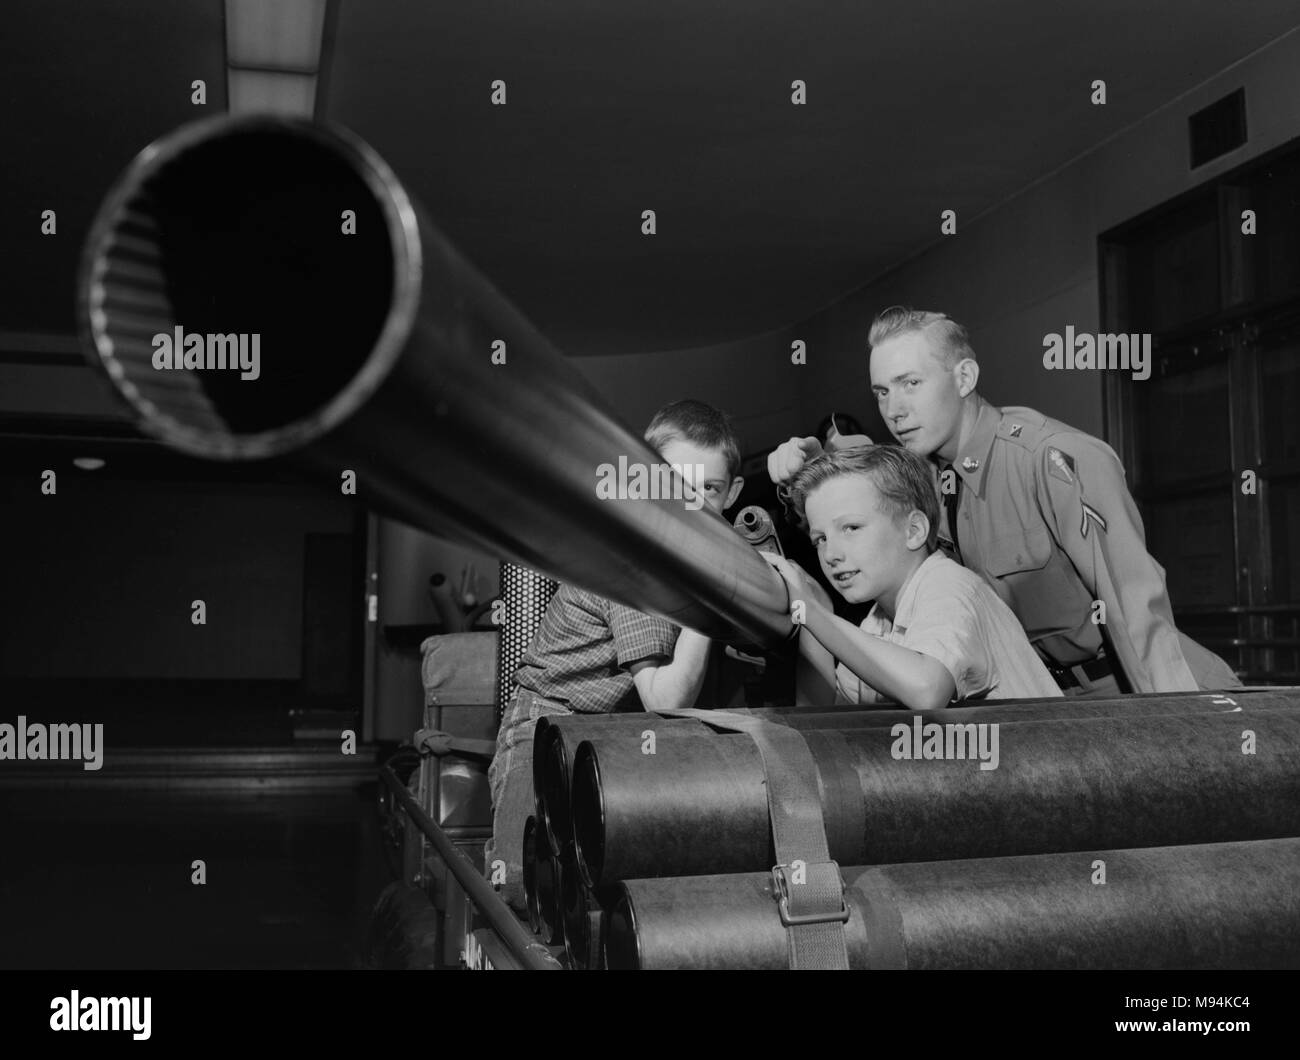 Three boys examine a 106 mm recoilless rifle at an Army exhibit at the Museum of Science and Industry in Chicago in 1958. - Stock Image